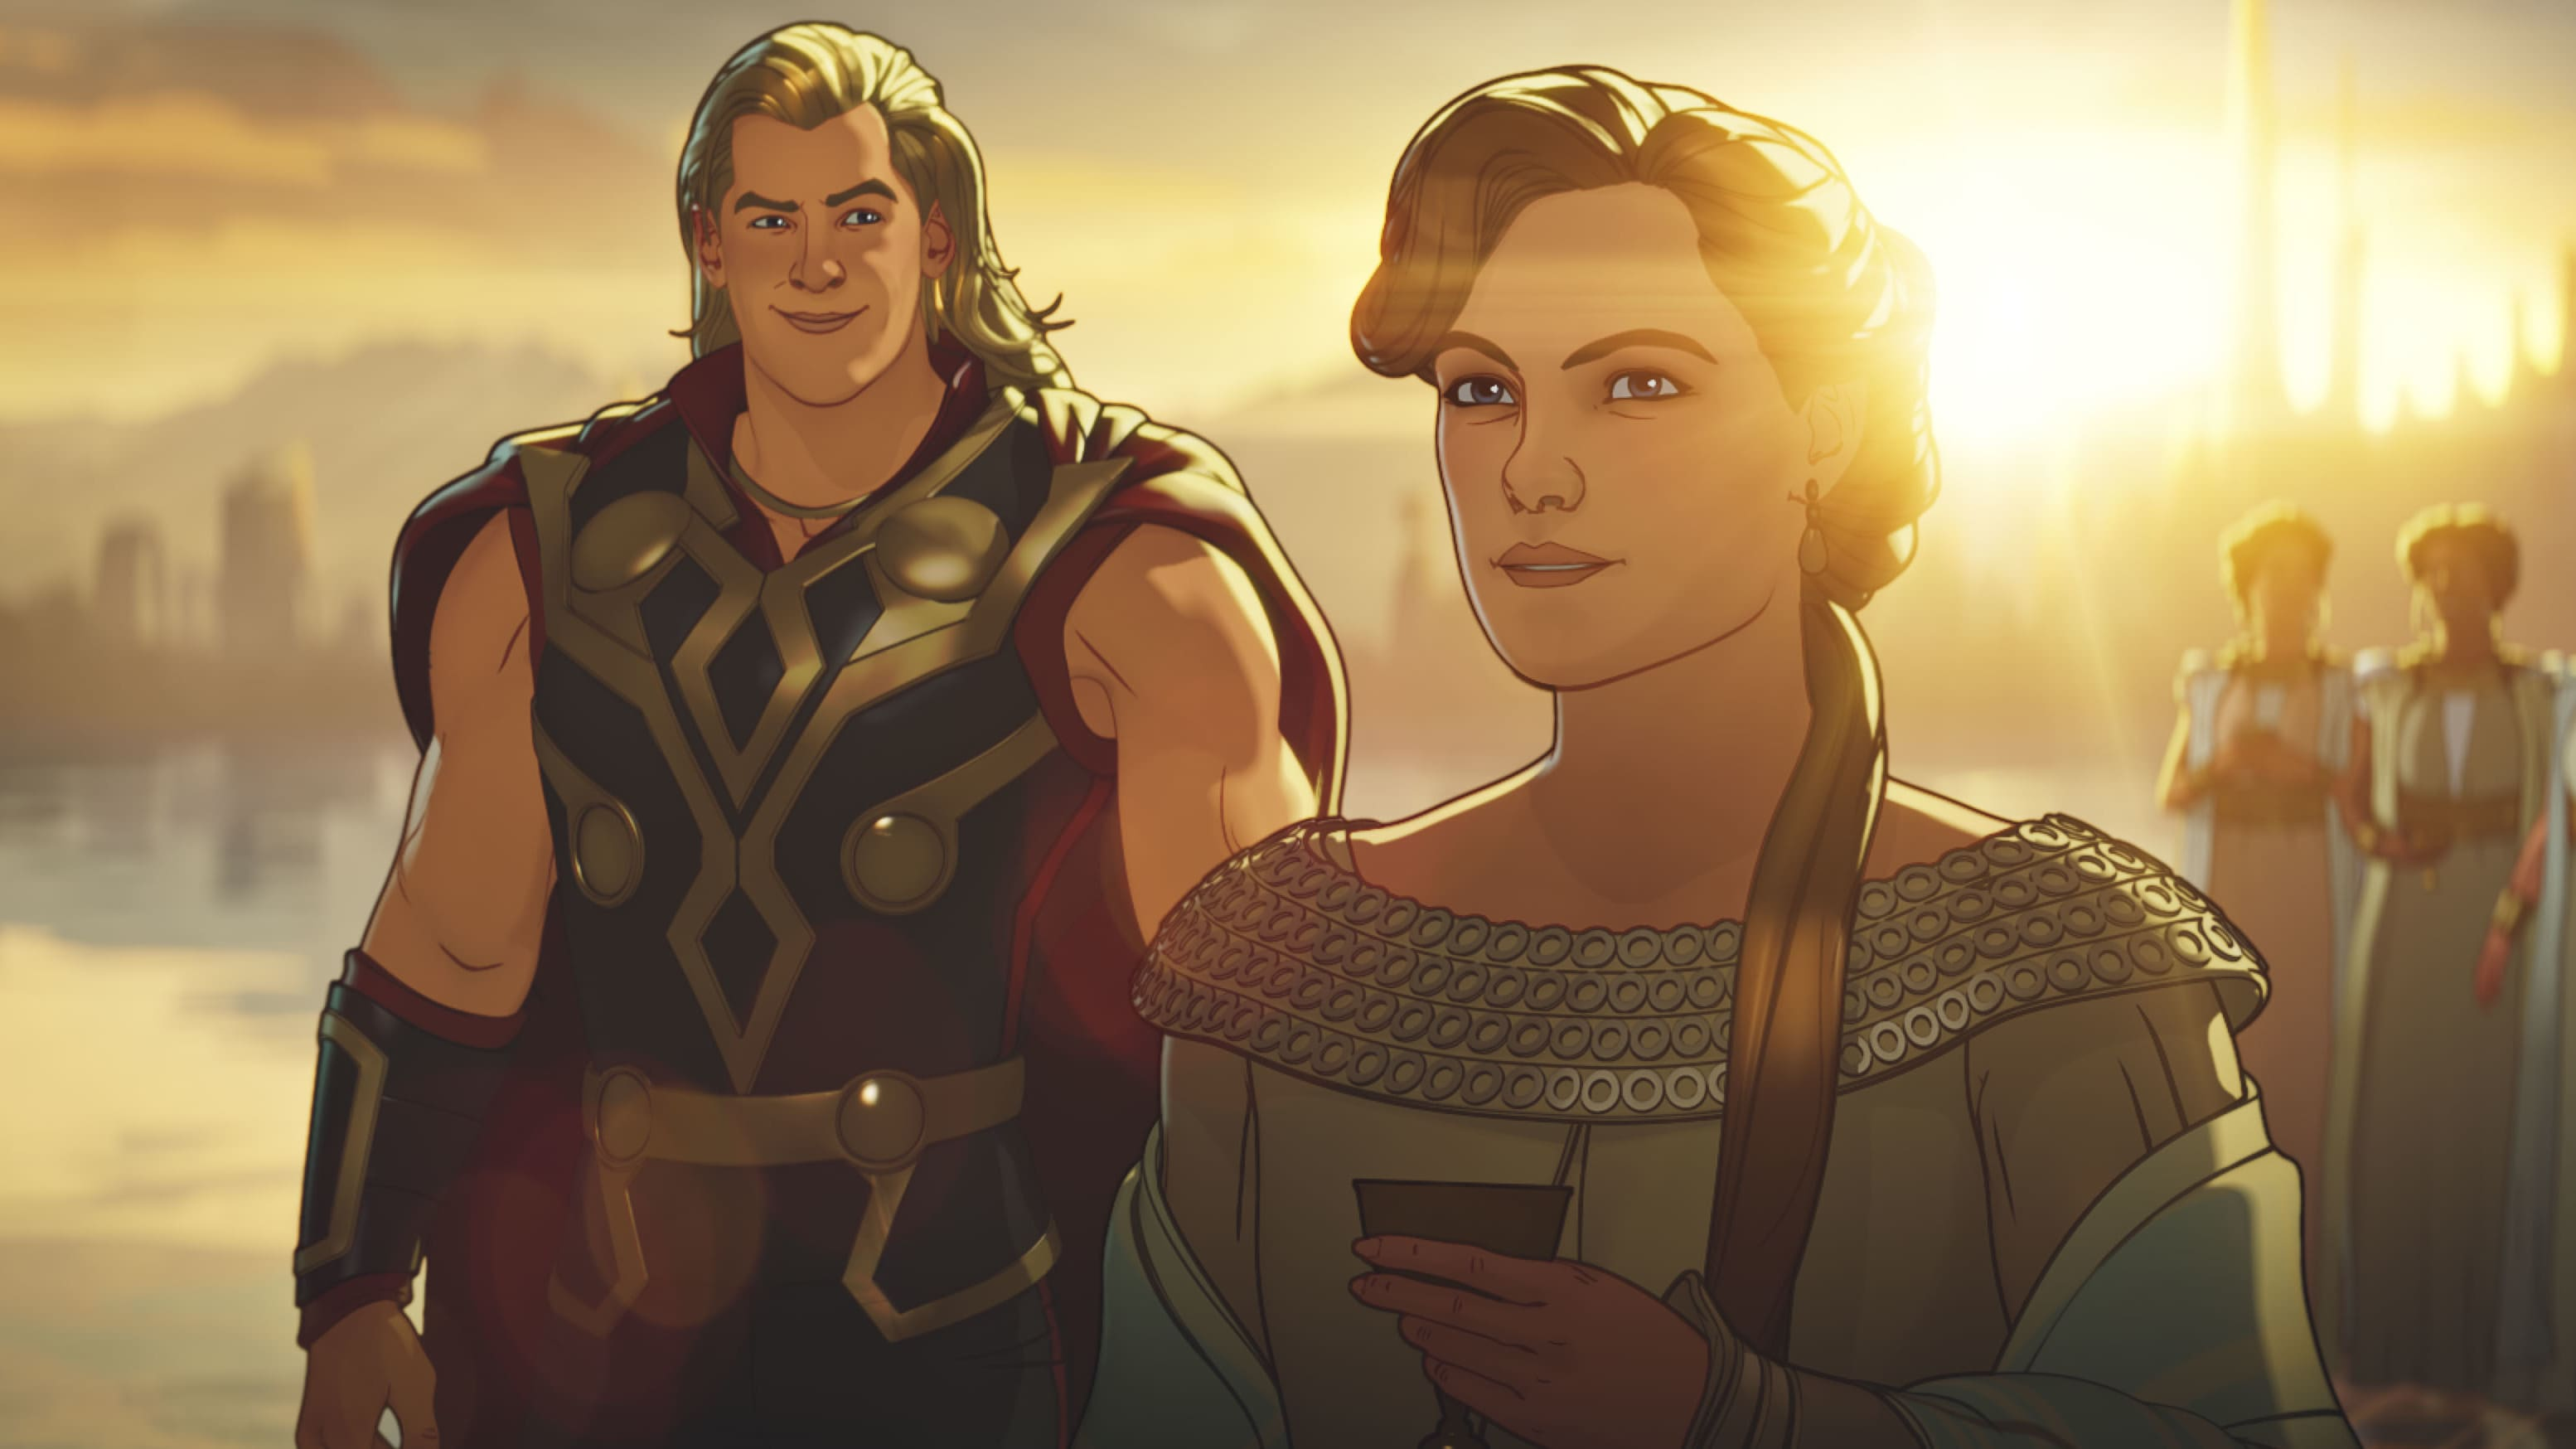 Party Thor and Frigga in Marvel Studios' WHAT IF…? exclusively on Disney+. ©Marvel Studios 2021. All Rights Reserved.